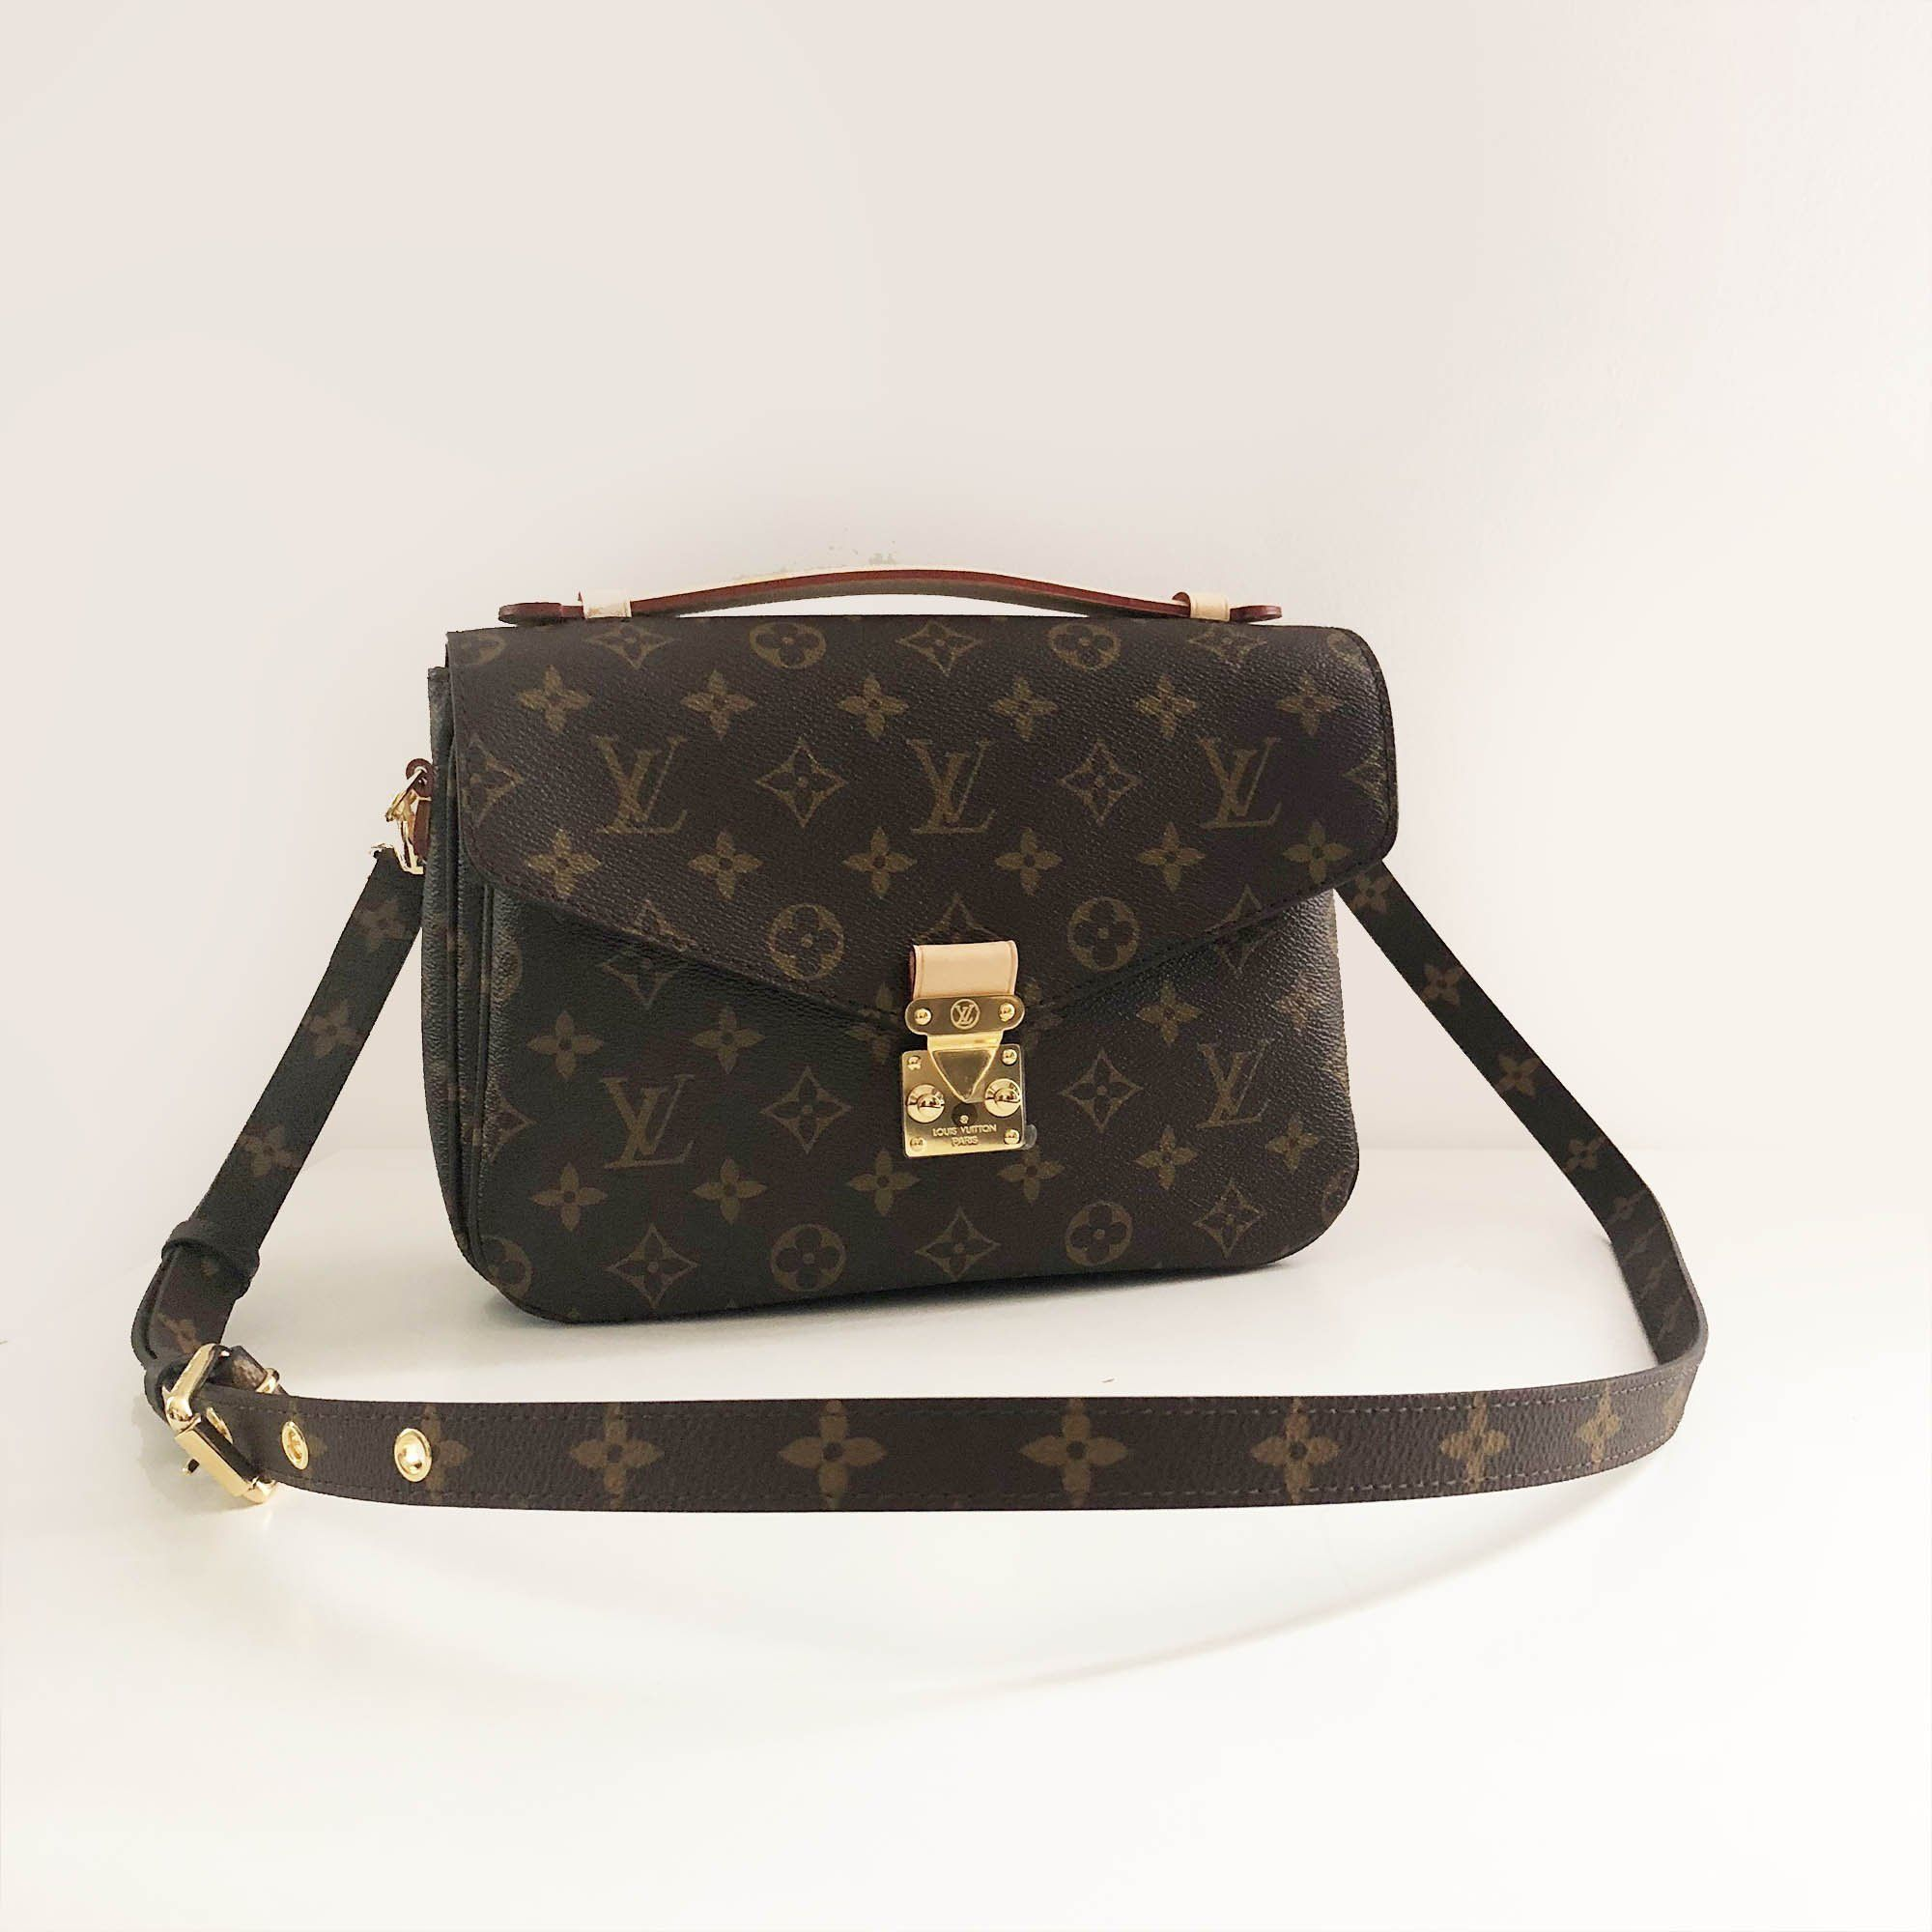 Louis Vuitton Alma Monogram Bag Garderobe